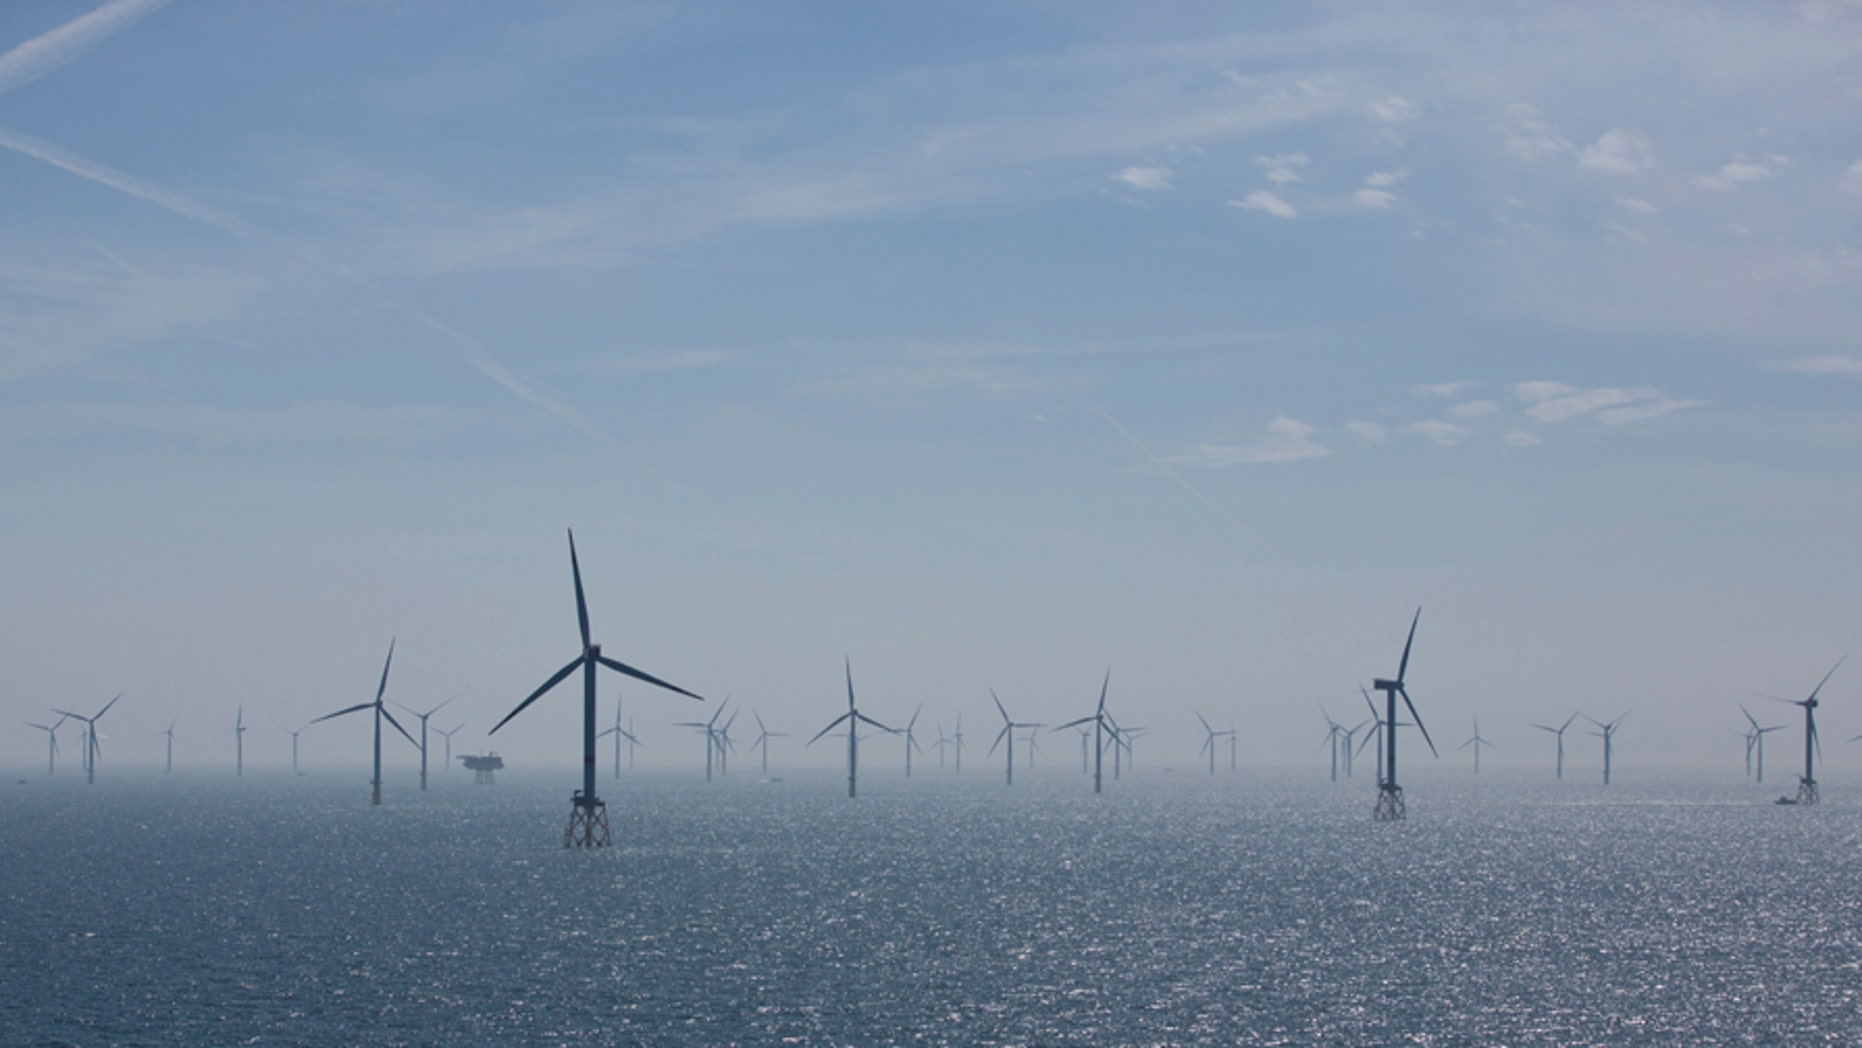 Wind turbines are pictured in RWE Offshore-Windpark Nordsee Ost in the North sea, 30 km from Helgoland, Germany, May 11, 2015.  REUTERS/Christian Charisius/Pool - LR2EB5B18VM75